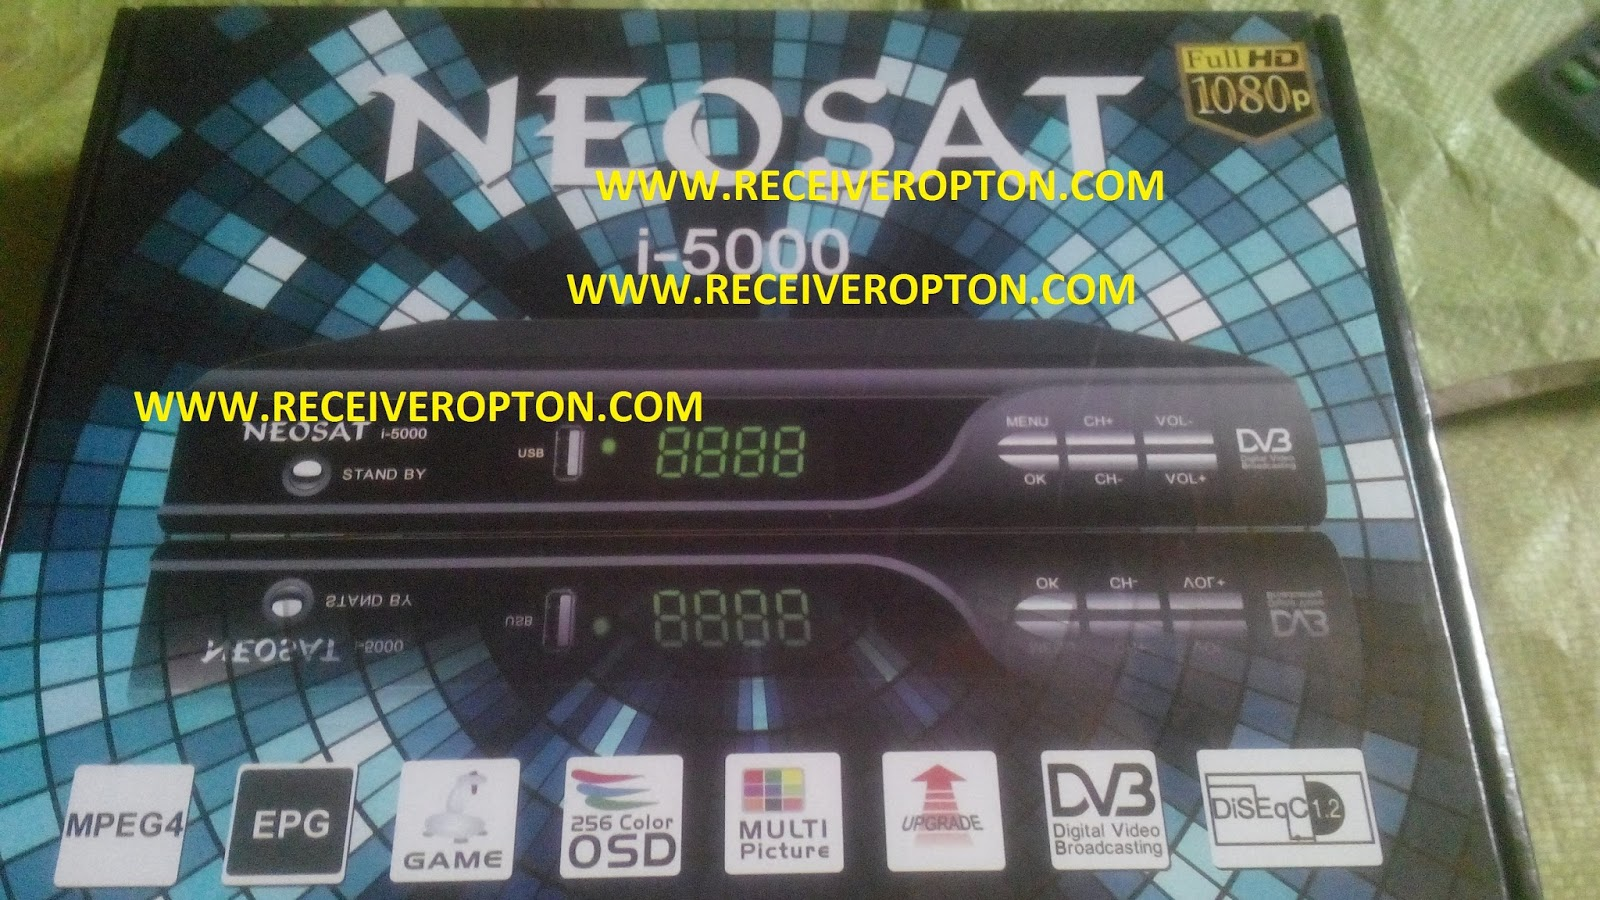 NEOSAT I-5000 HD RECEIVER POWERVU KEY SOFTWARE - HOW TO